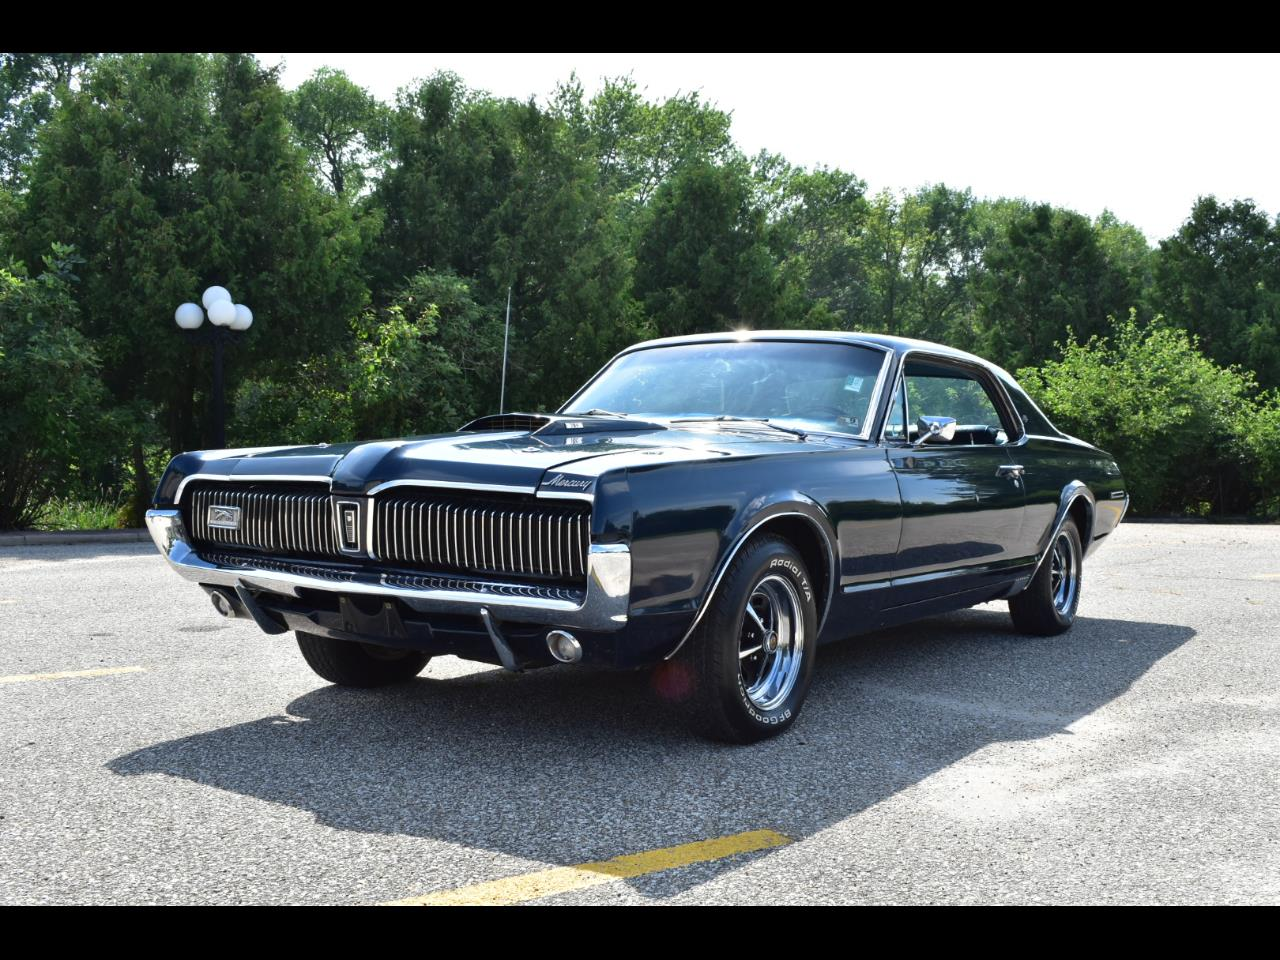 Large Picture of '67 Mercury Cougar located in Iowa - $18,995.00 - Q9AO